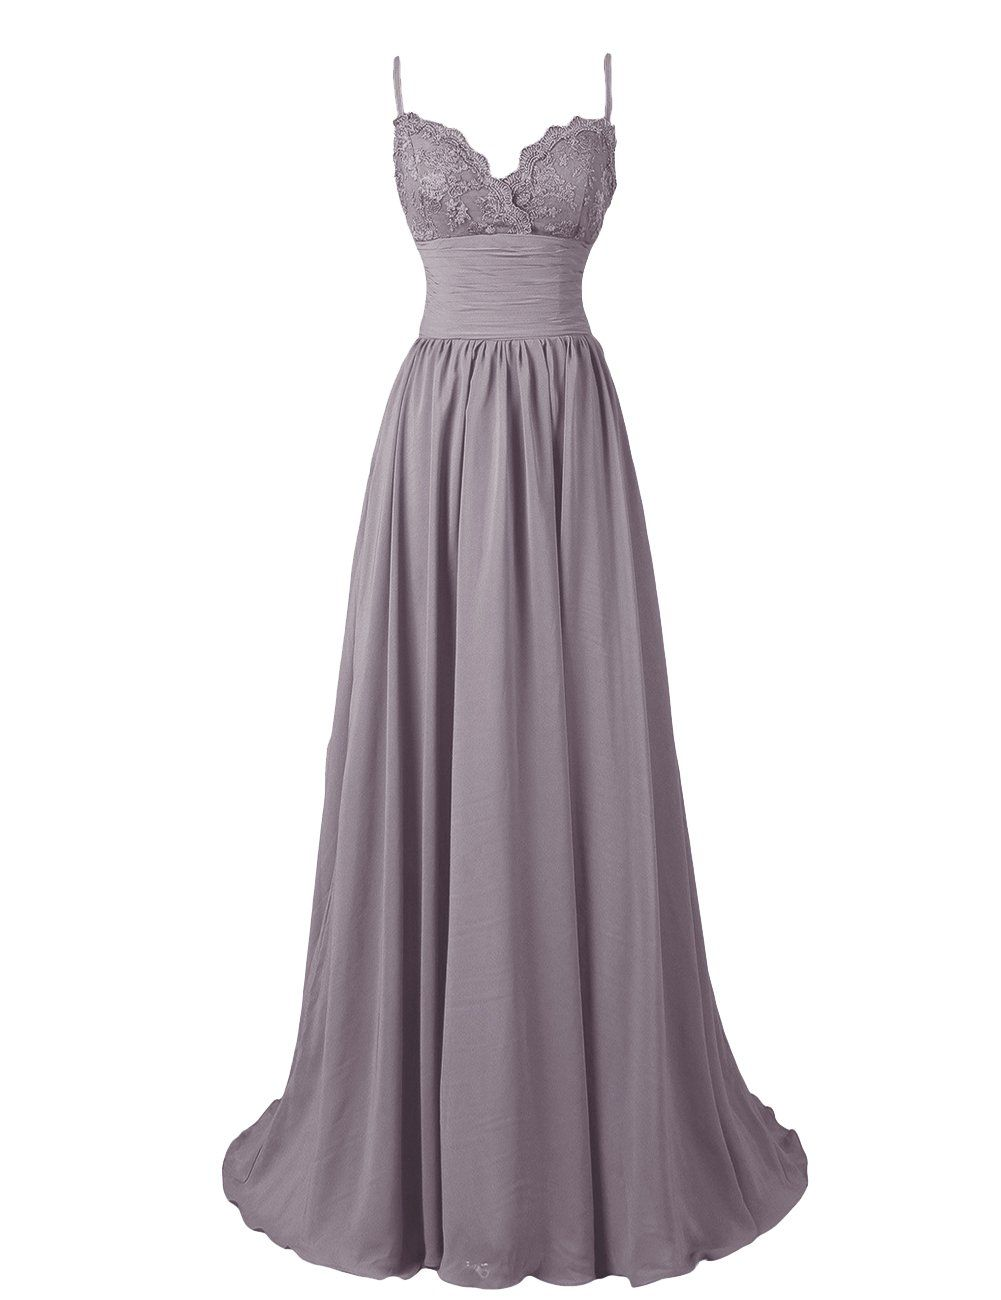 Diyouth aline spaghetti straps sweetheart long lace chiffon prom